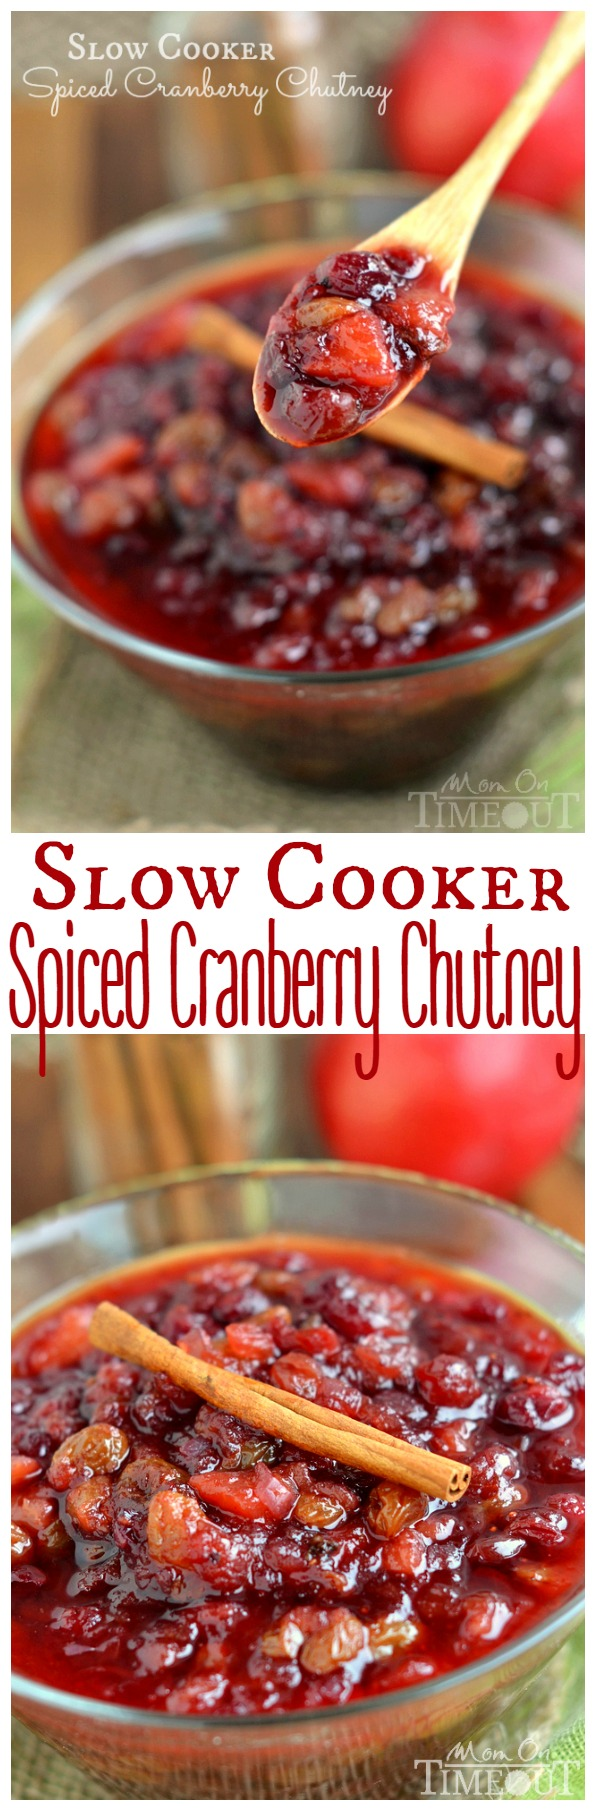 cranberry-chtuney-recipe-easy-slow-cooker